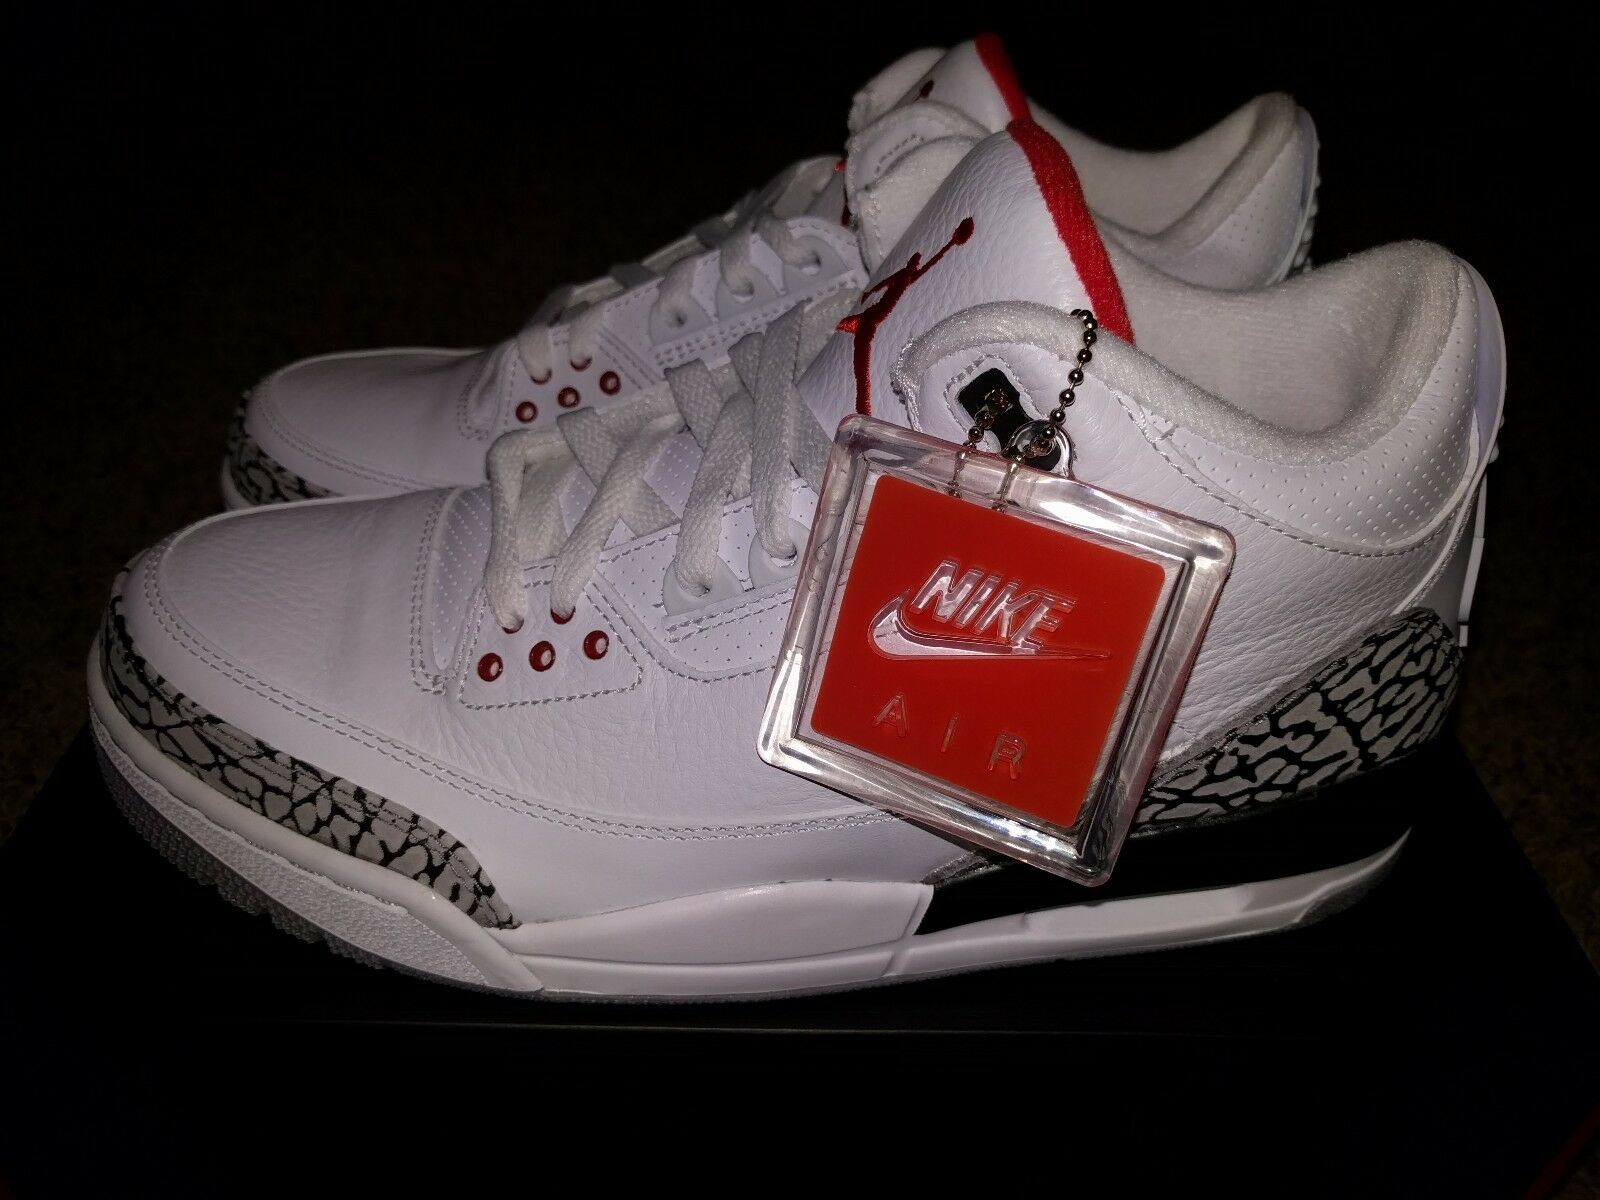 Nike Air Jordan 3 88 White Cement Retro III Black 2013 JTH Tinker WC3 Size 9.5